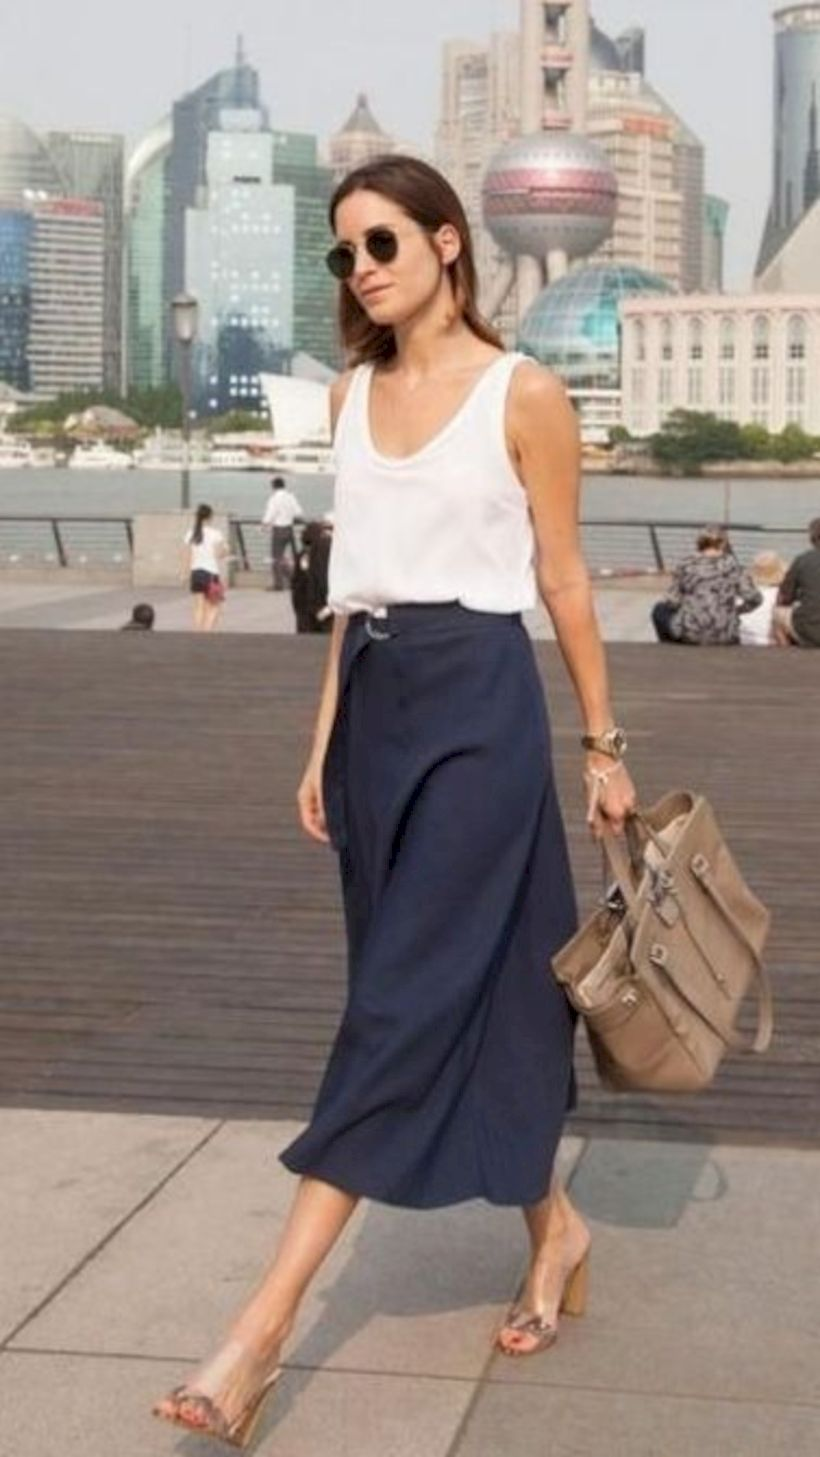 Street Style Guide to Summer Work Attire Street Style Guide to Summer Work Attire new pics